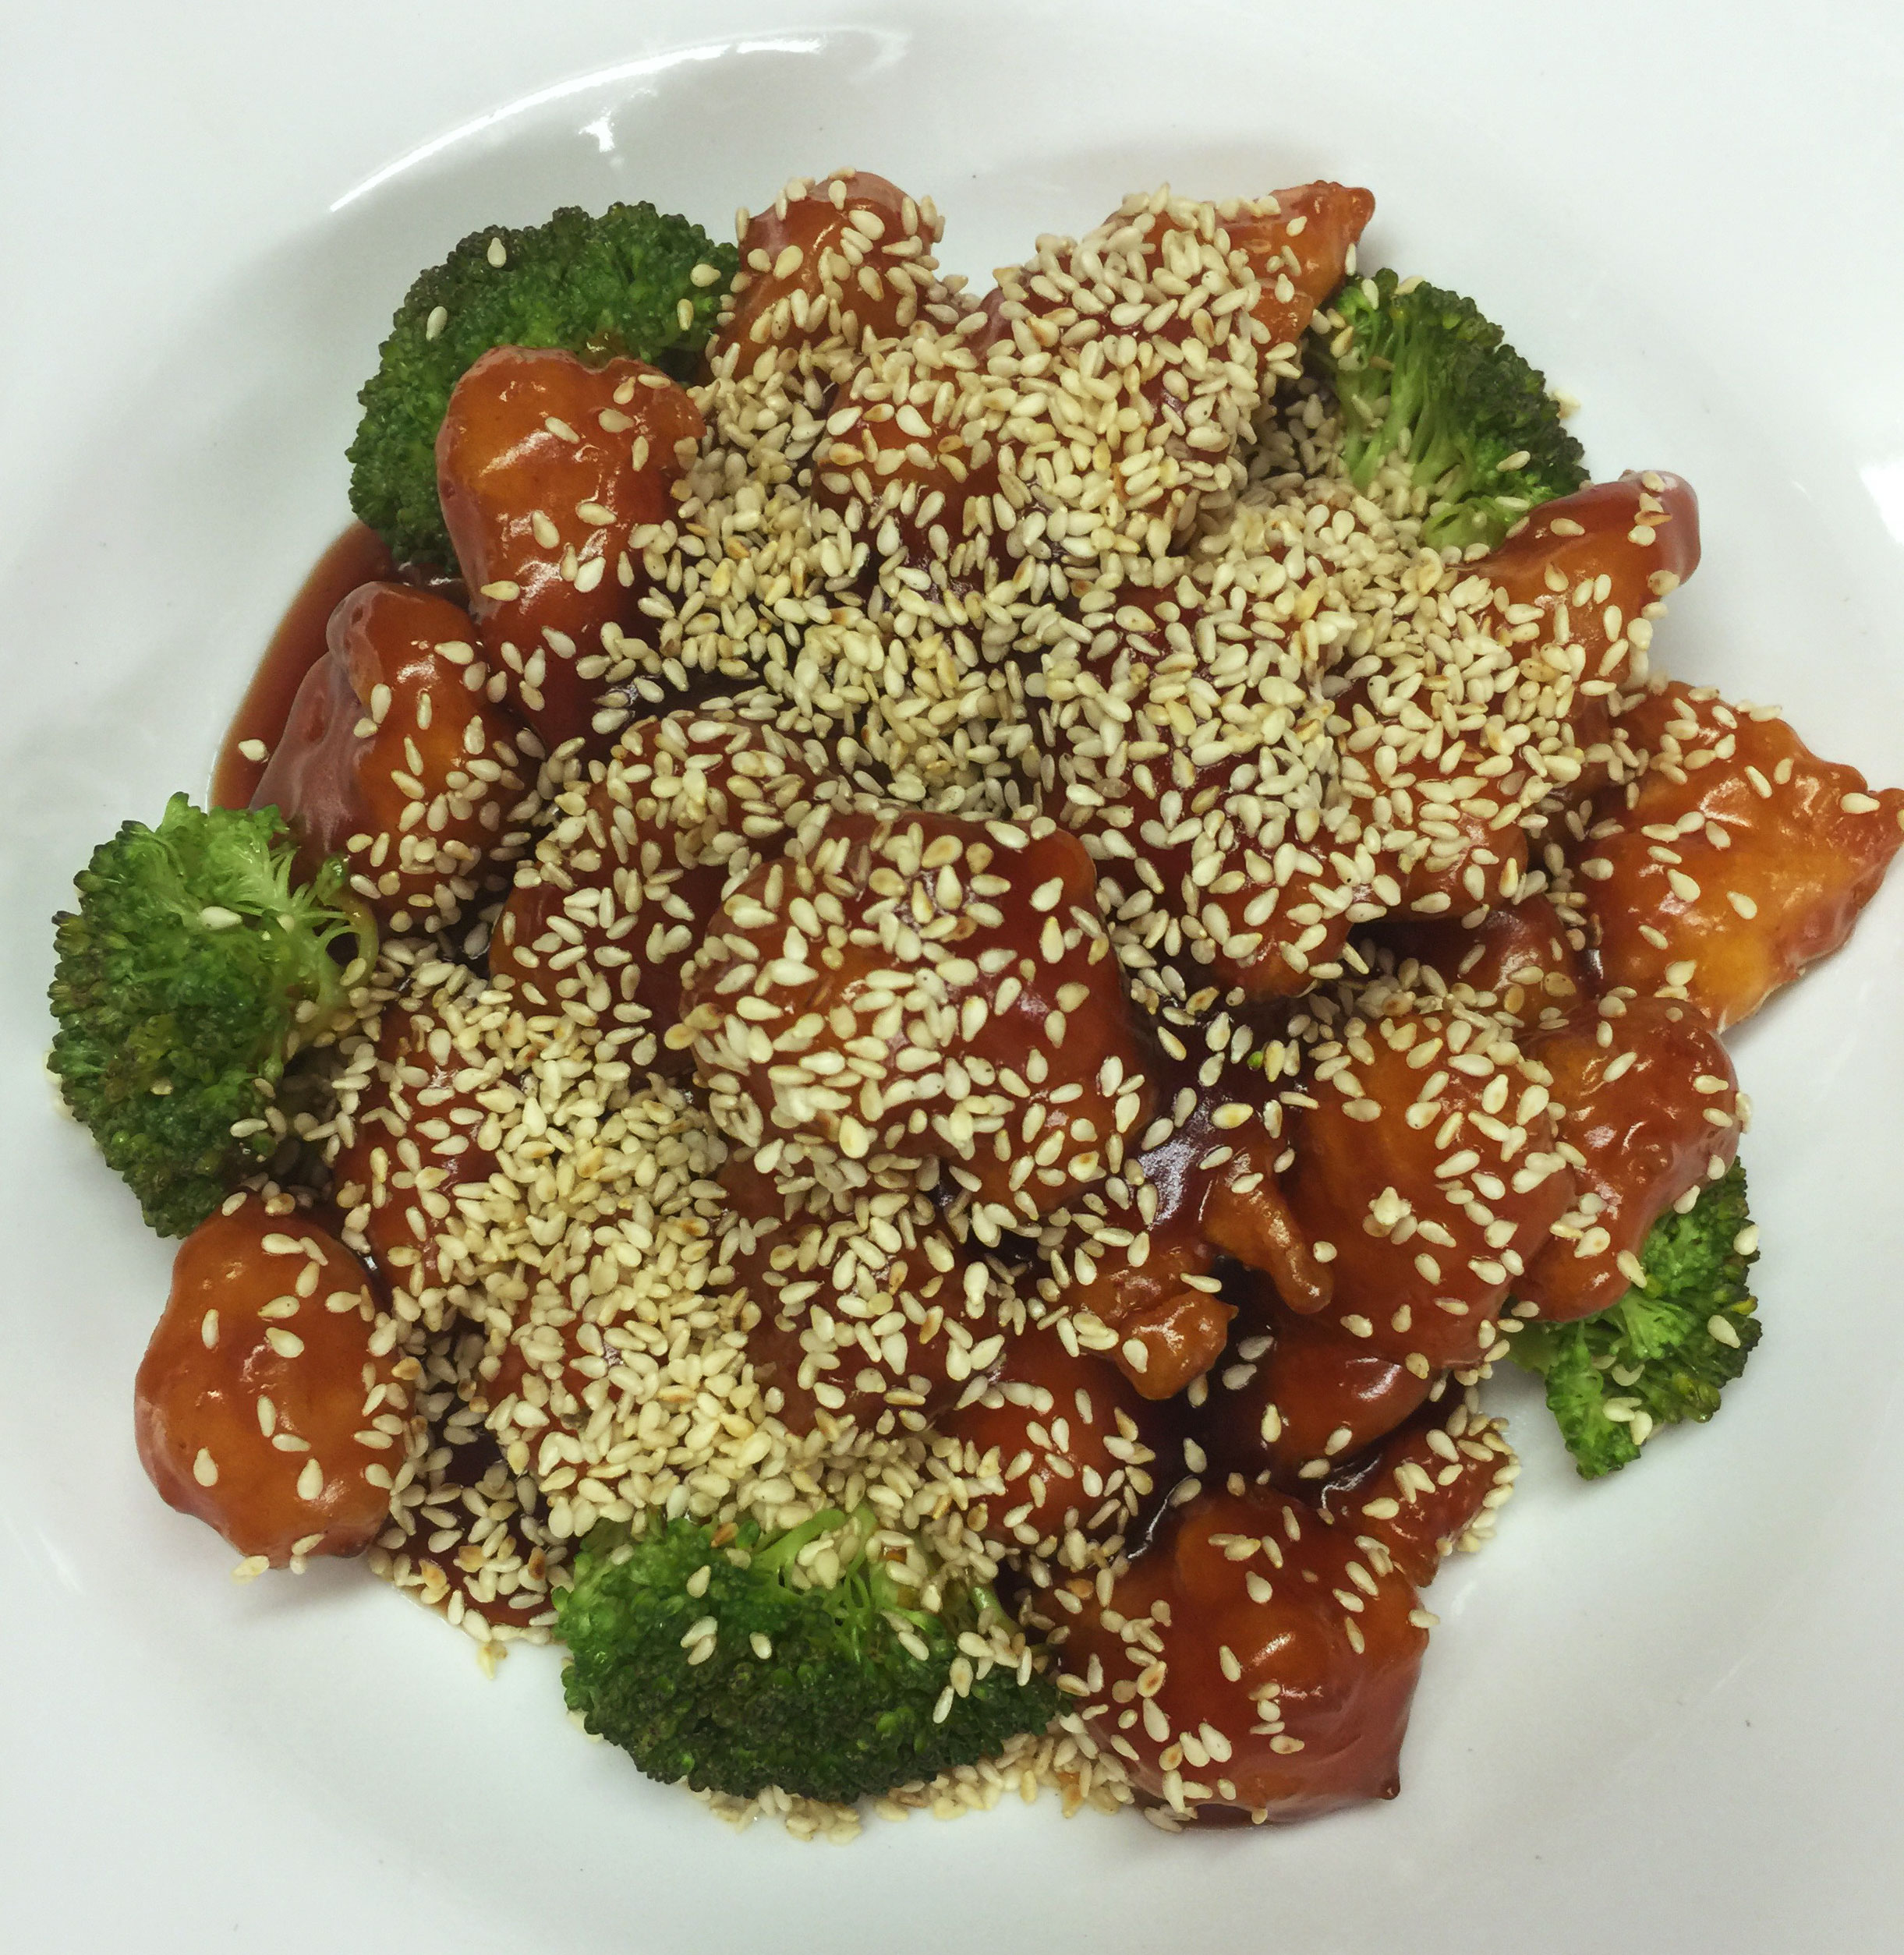 157. Sesame Chicken Image